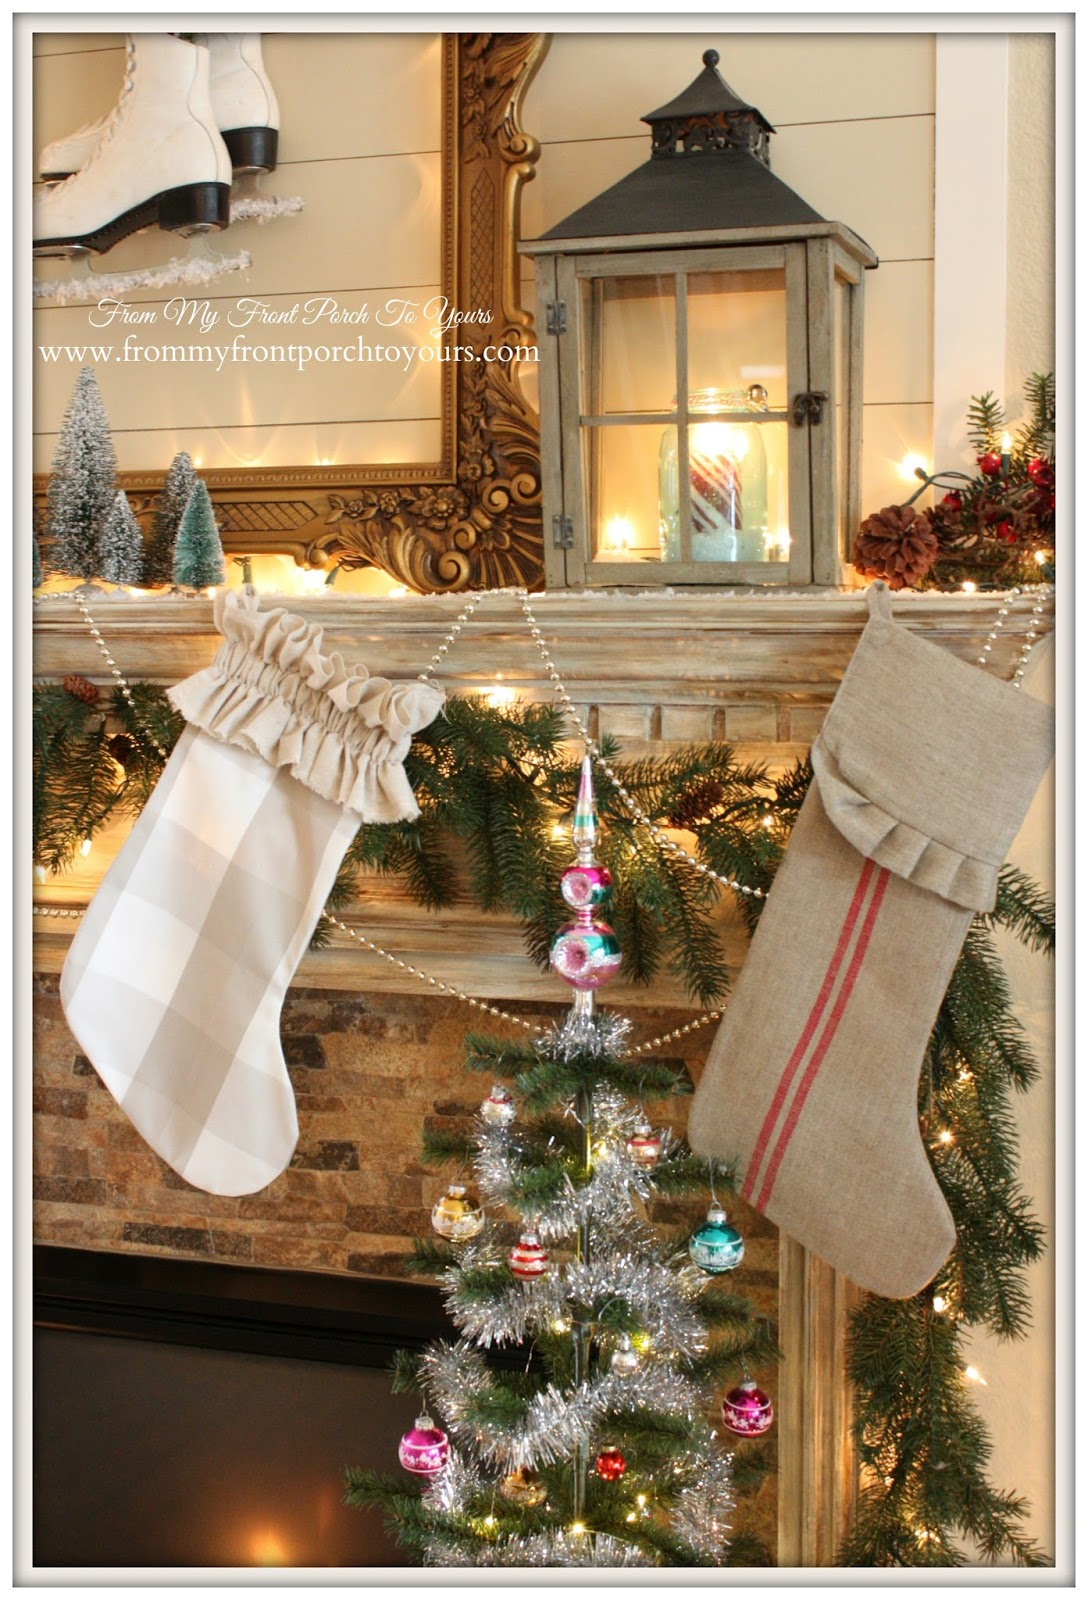 French Farmhouse Vintage Christmas Mantel-Lantern-DIY-Stockings- From My Front Porch To Yours